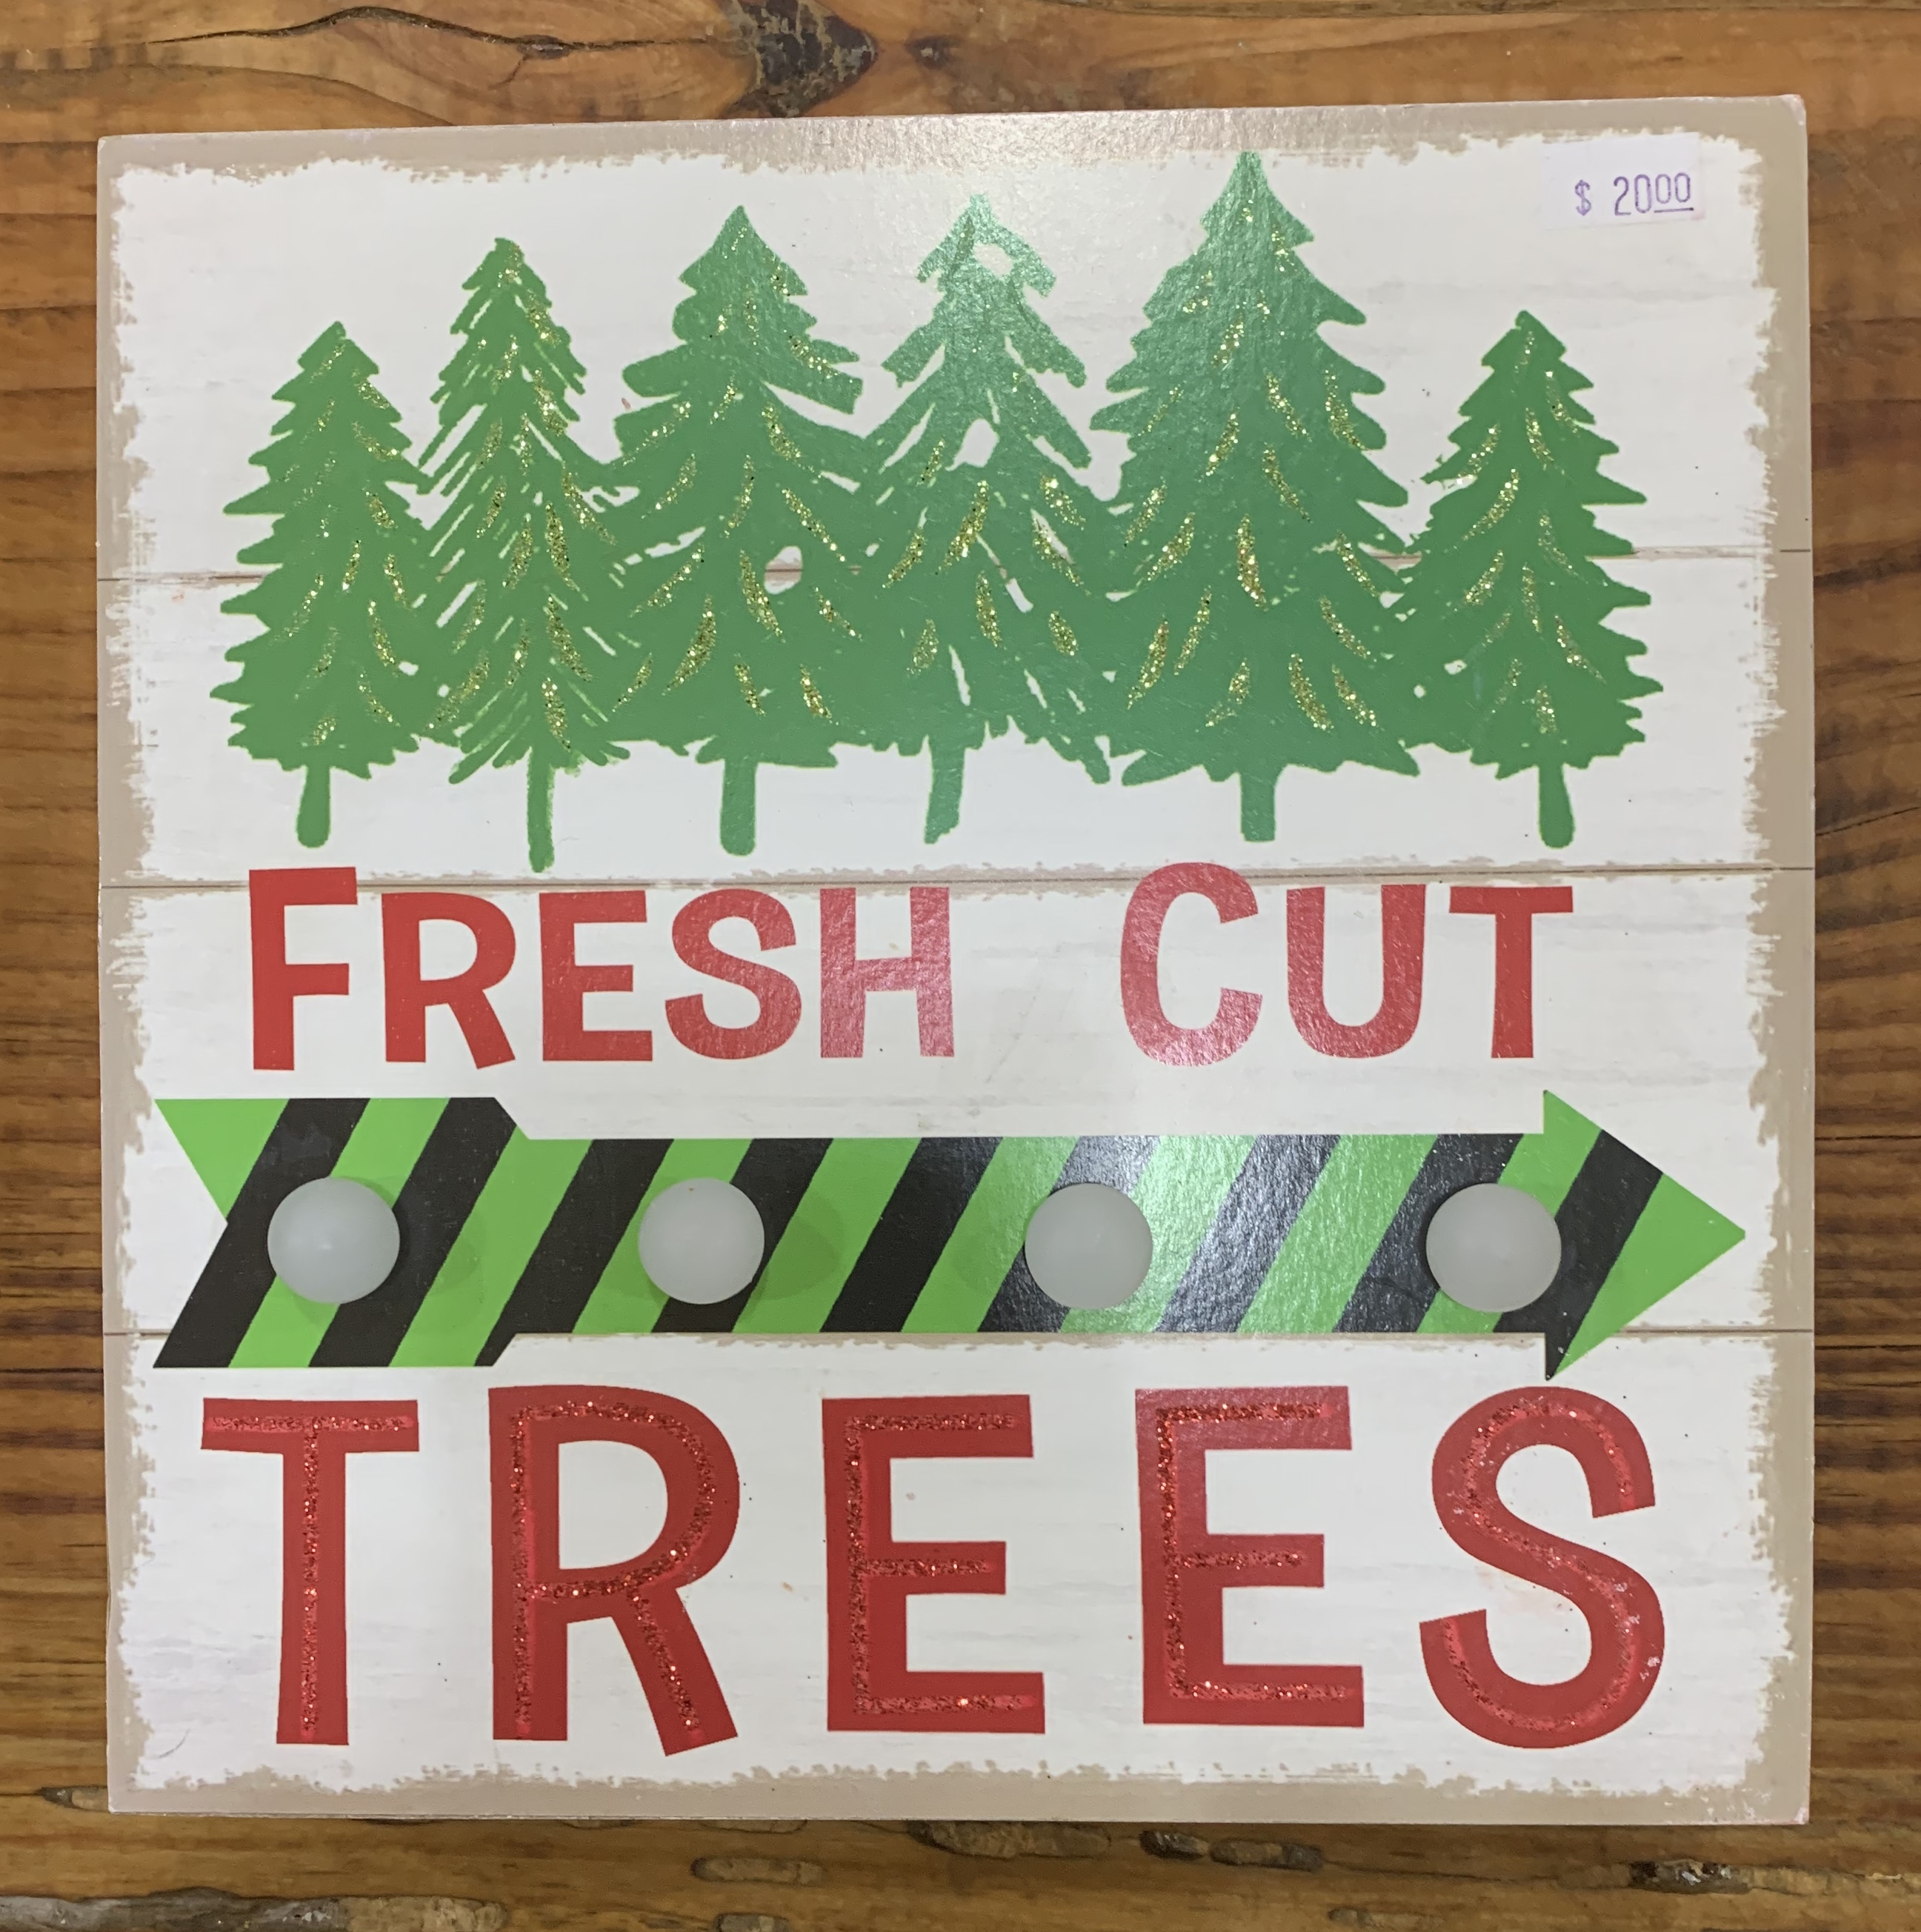 Fresh Cut TREES box light-up sign